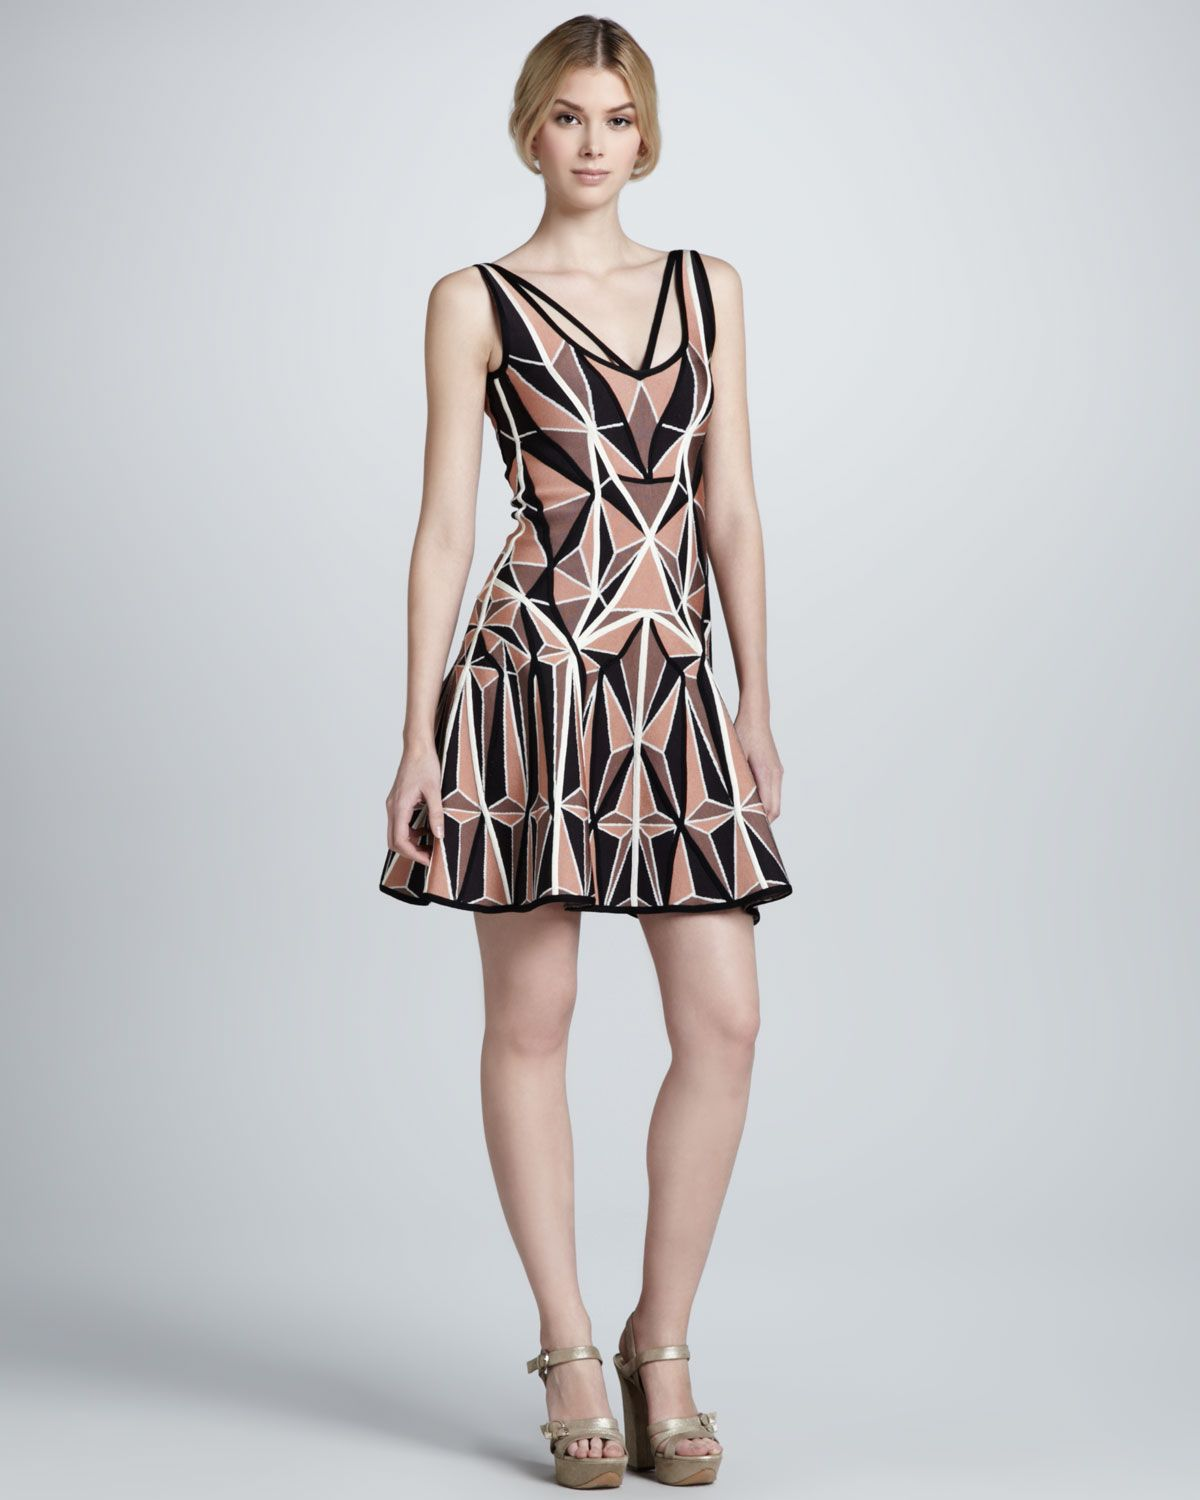 Herve Leger Printed Flared Bandage Dress Neiman Marcus